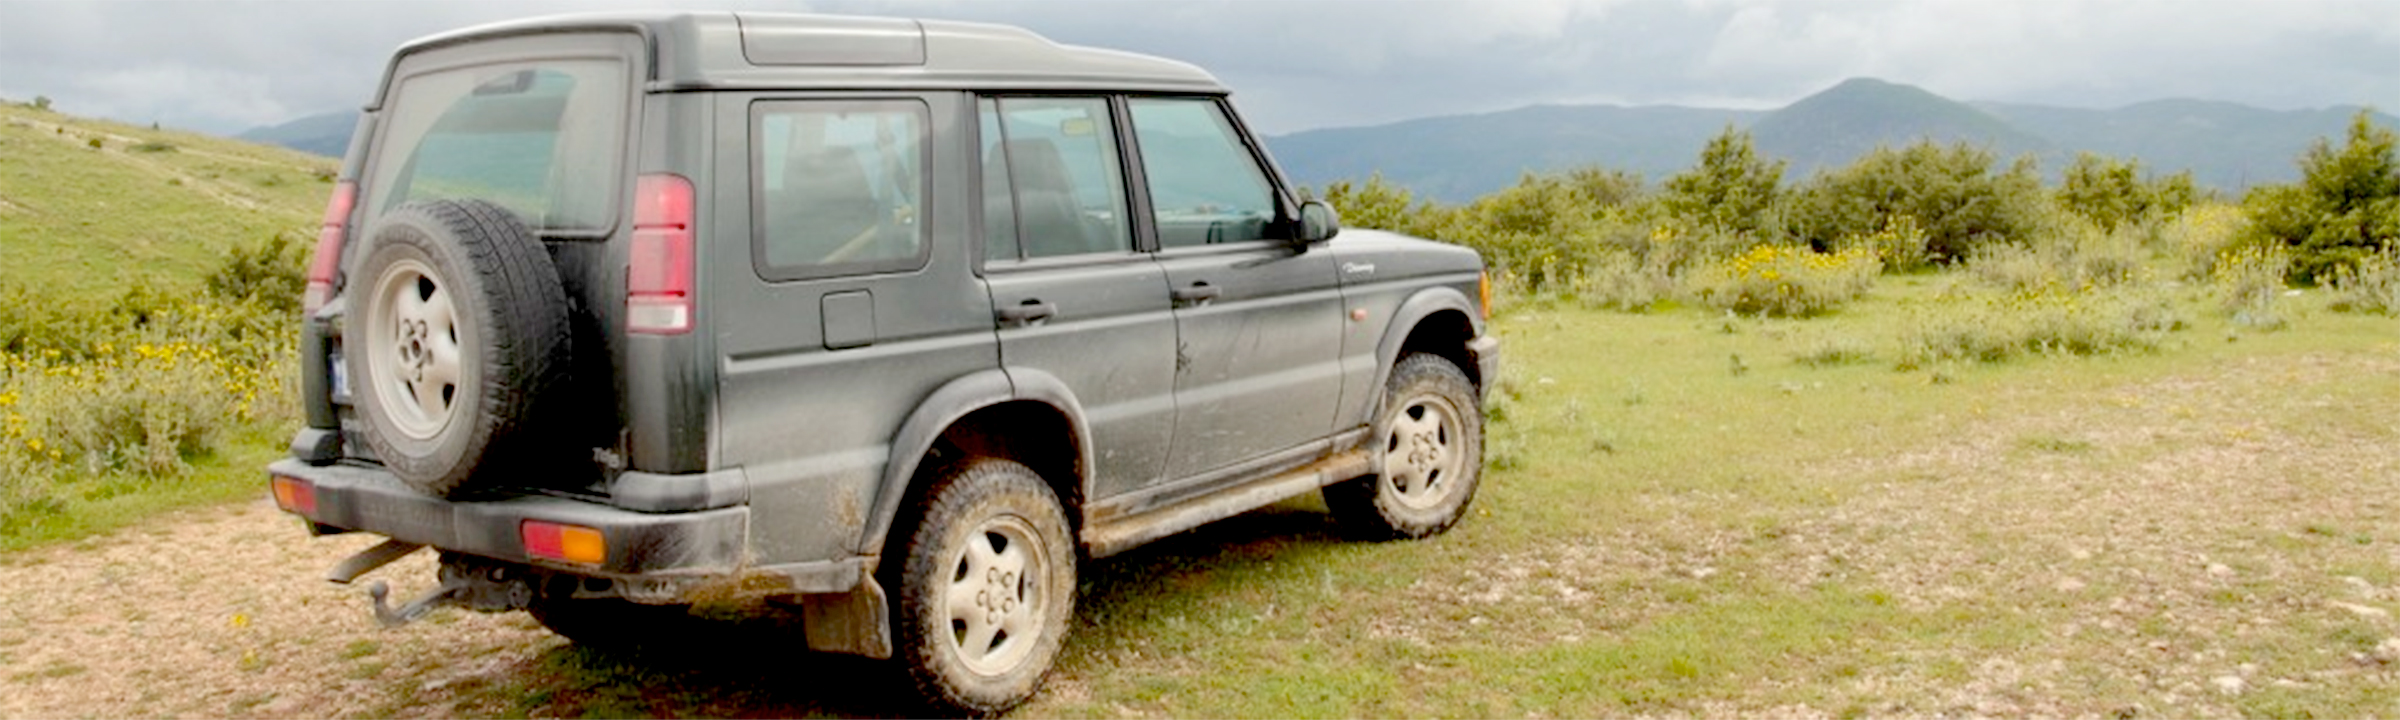 Land-Rover-For-Hire-in-Albania